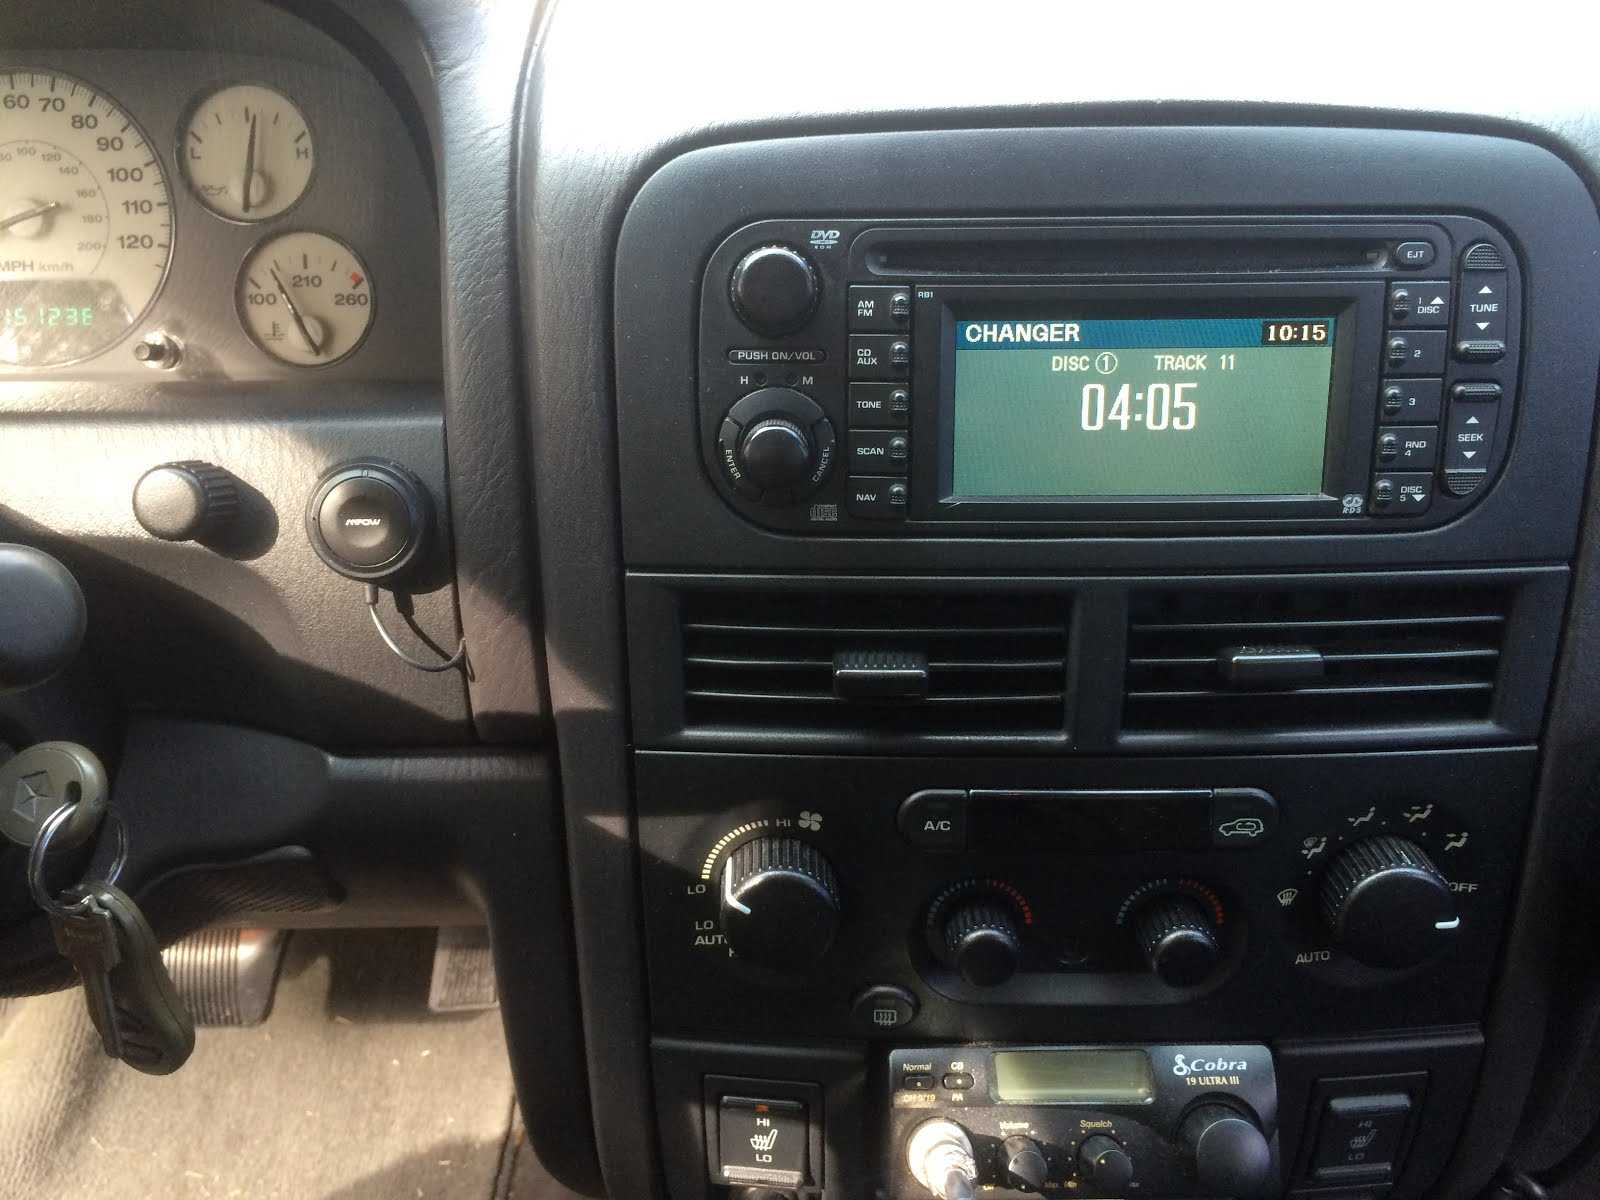 medium resolution of keep the stock radio nav unit and add an aux input and bluetooth adapter for